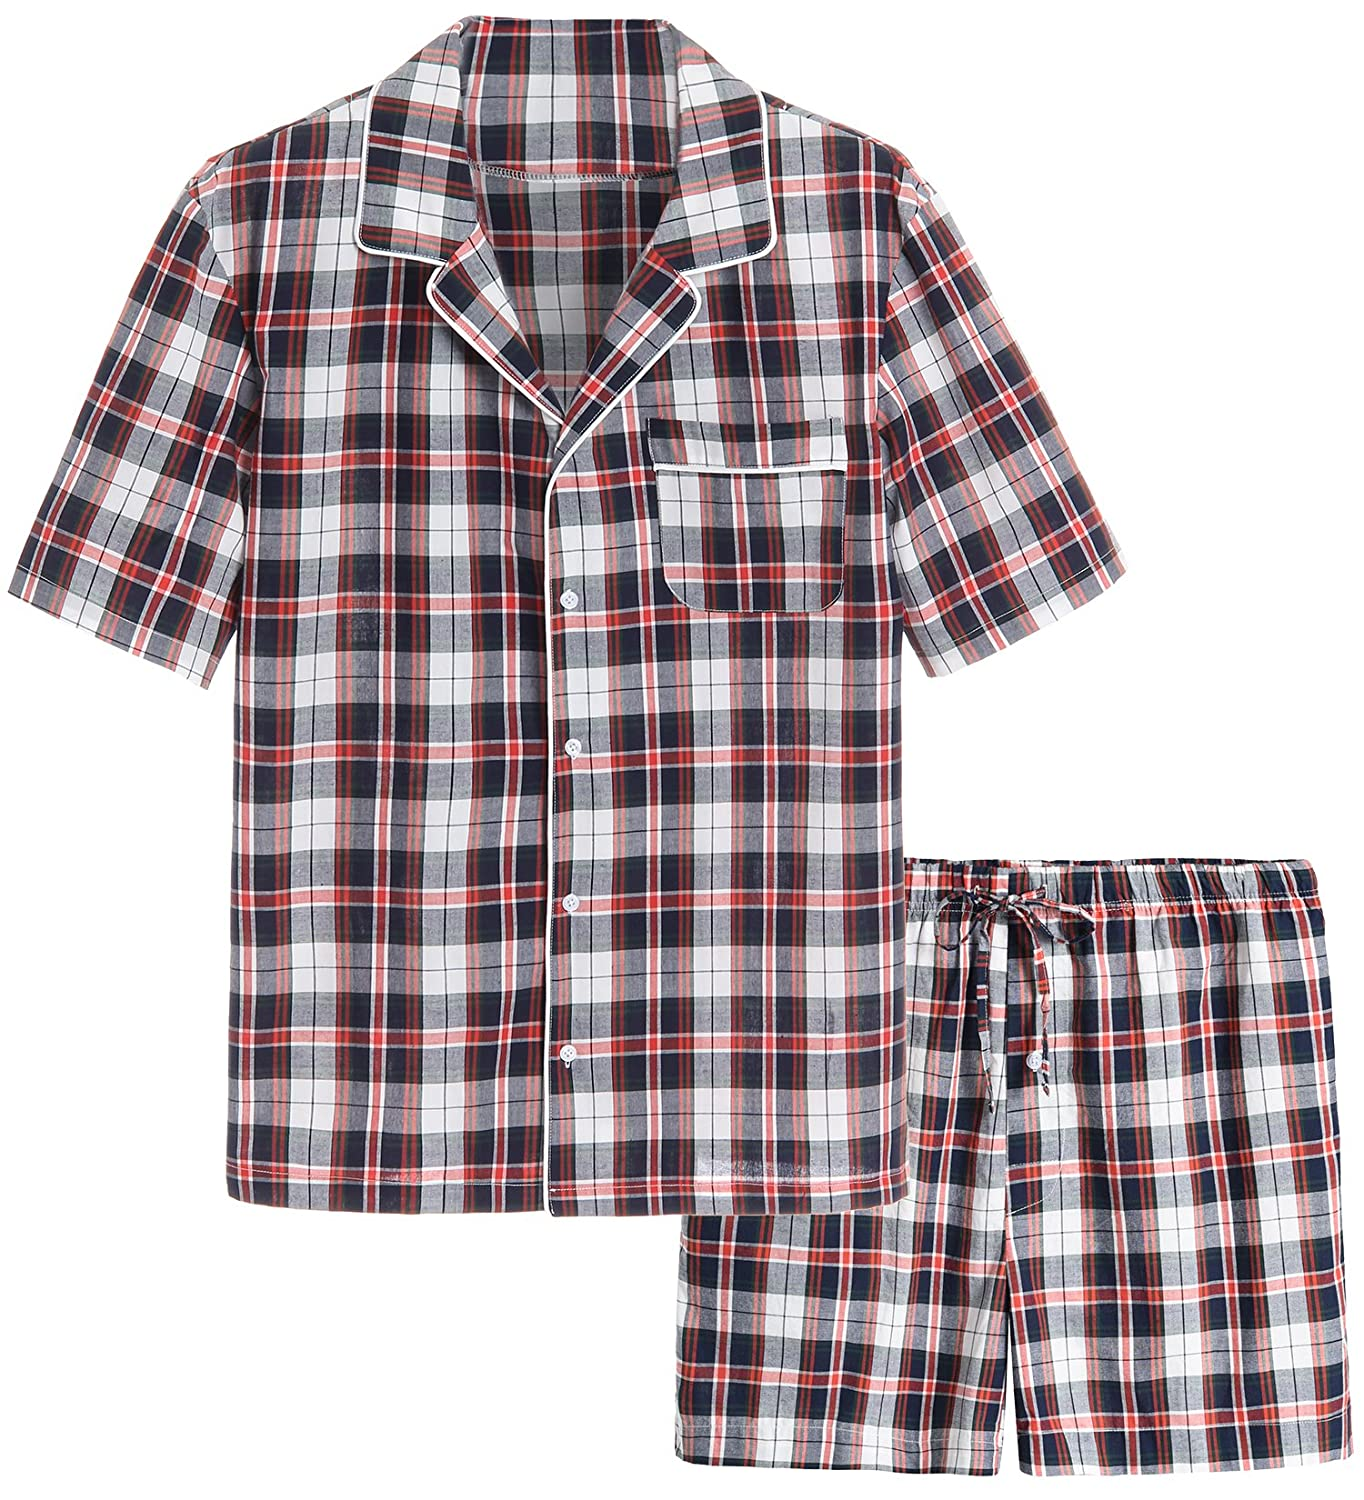 Latuza Men's Cotton Woven Short Sleepwear Pajama Set 24-00-7628